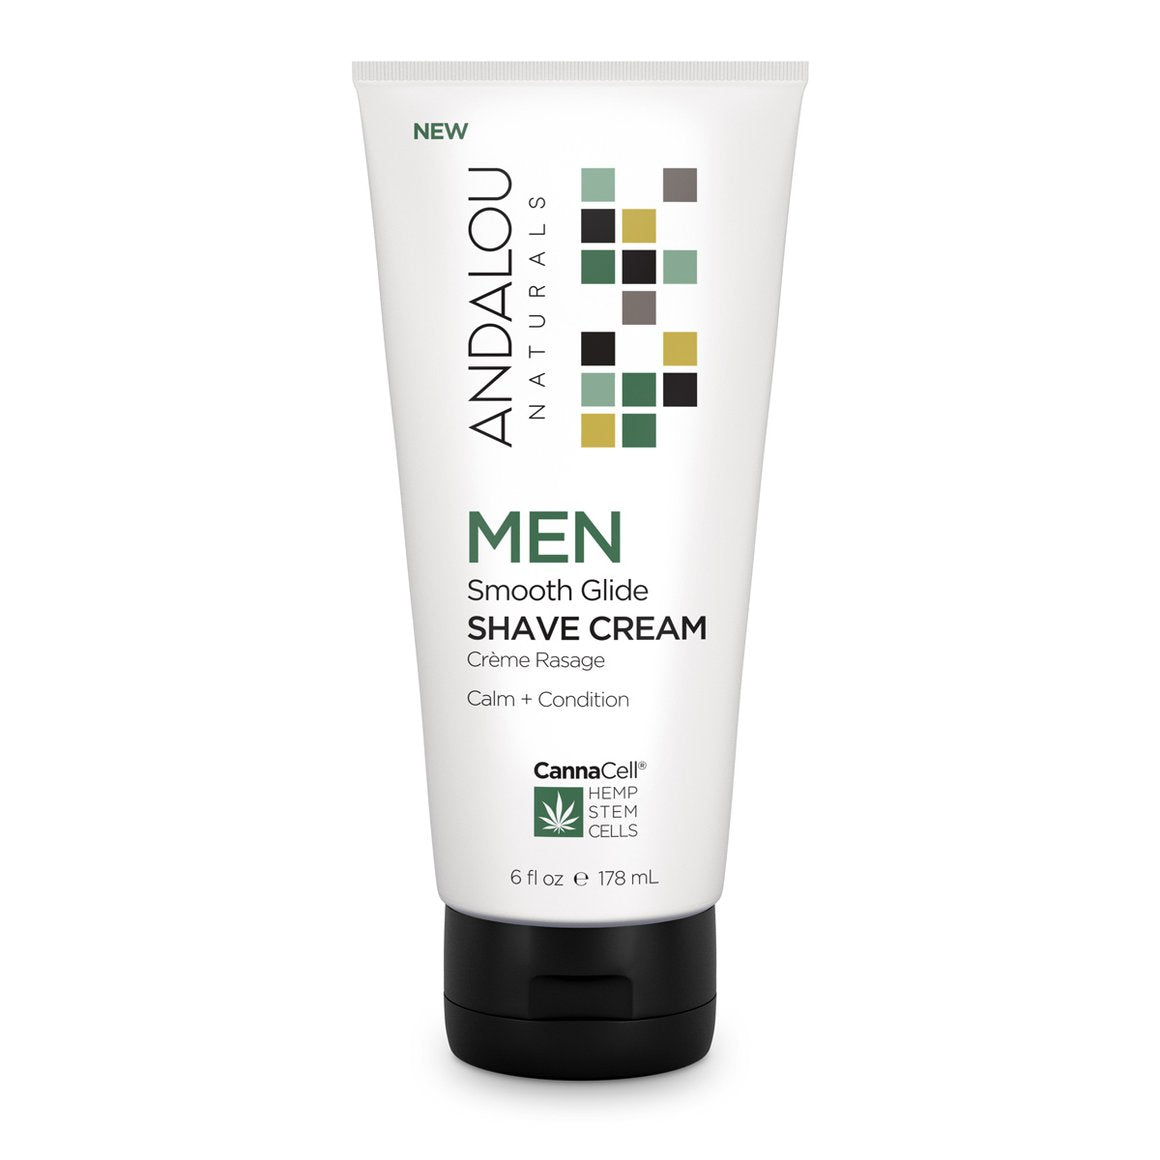 Andalou Naturals Smooth Glide Shave Cream for Men - Harvest Haven